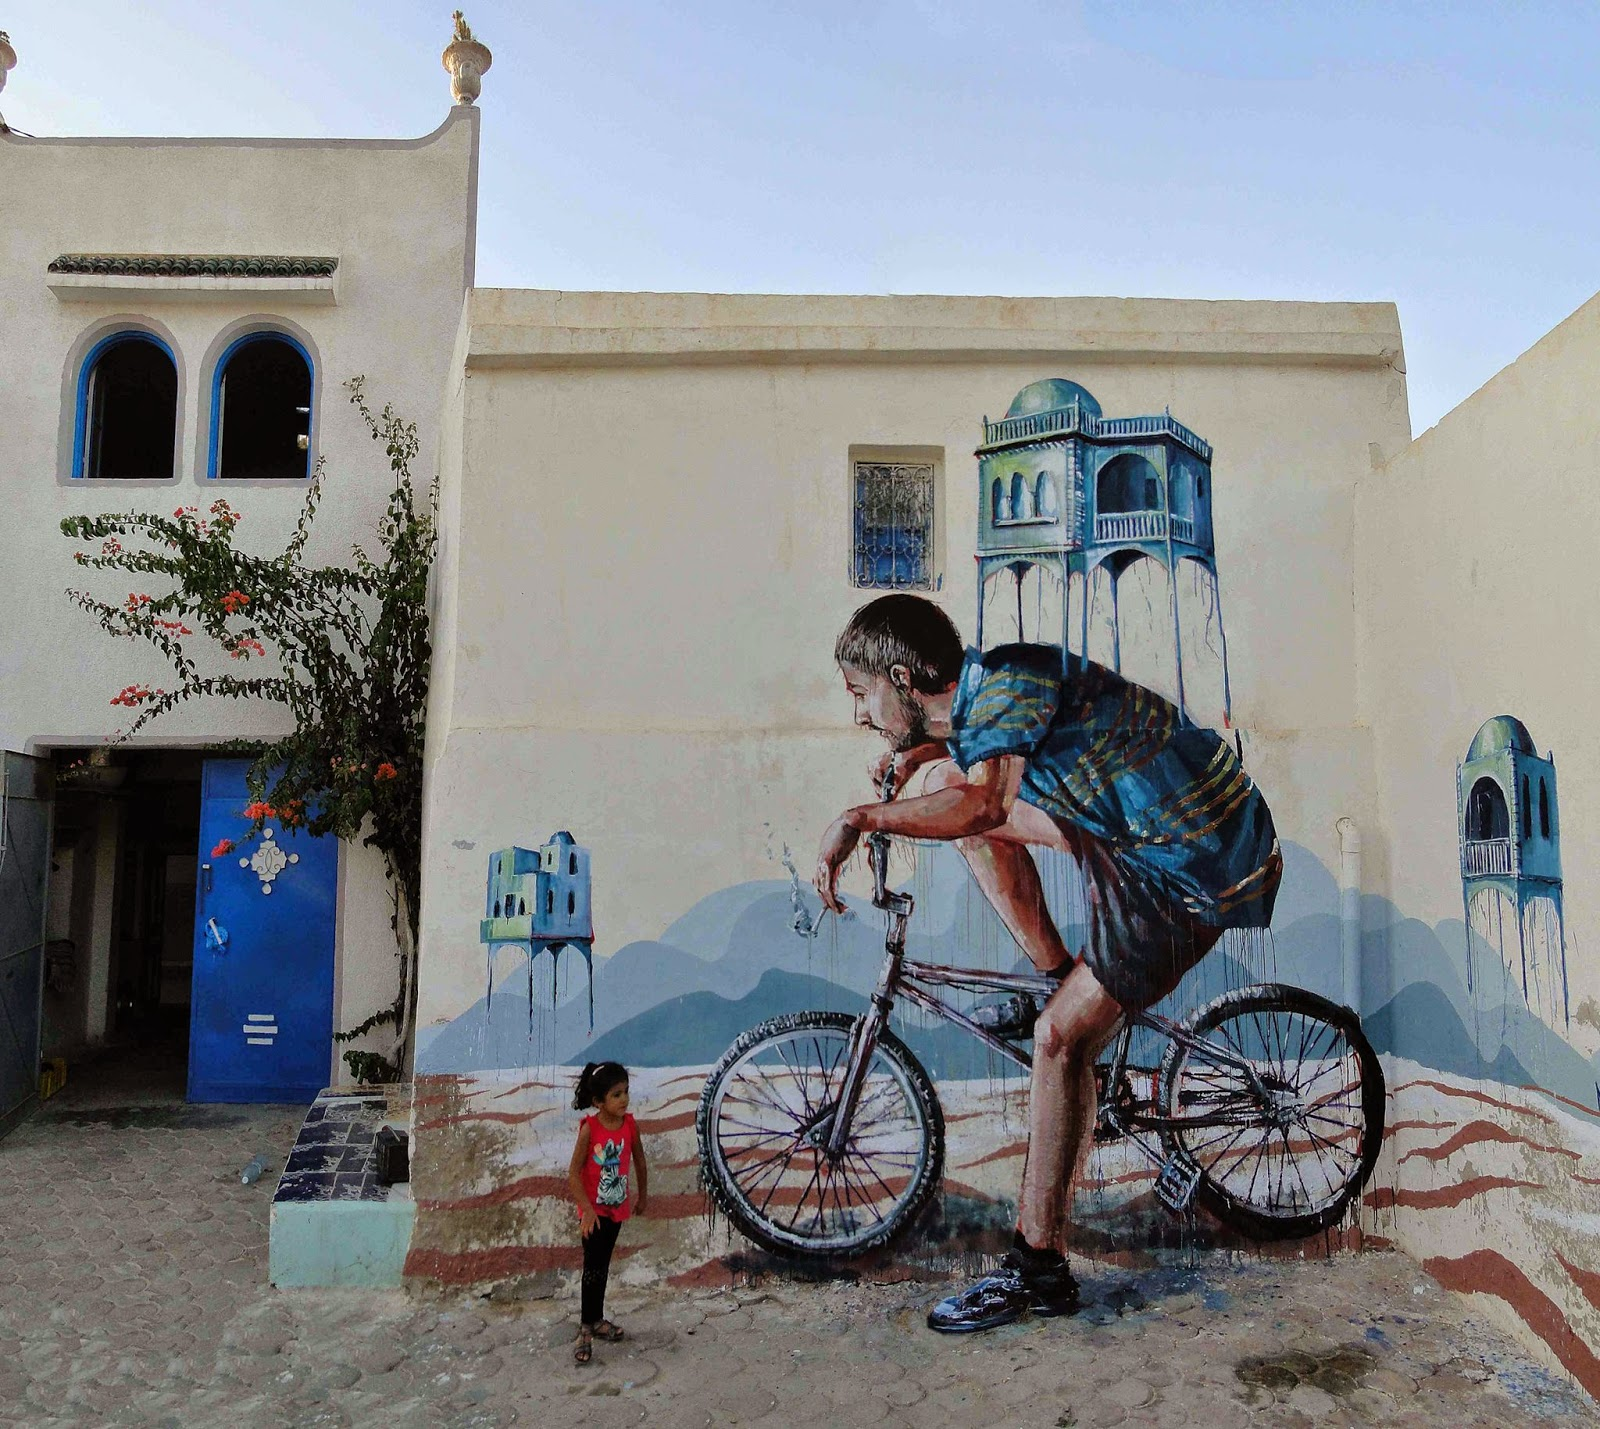 Our friend Fintan Magee is currently in North Africa where he just finished working on this new piece for the Djerbahood project on the island of Djerba in Tunisia.